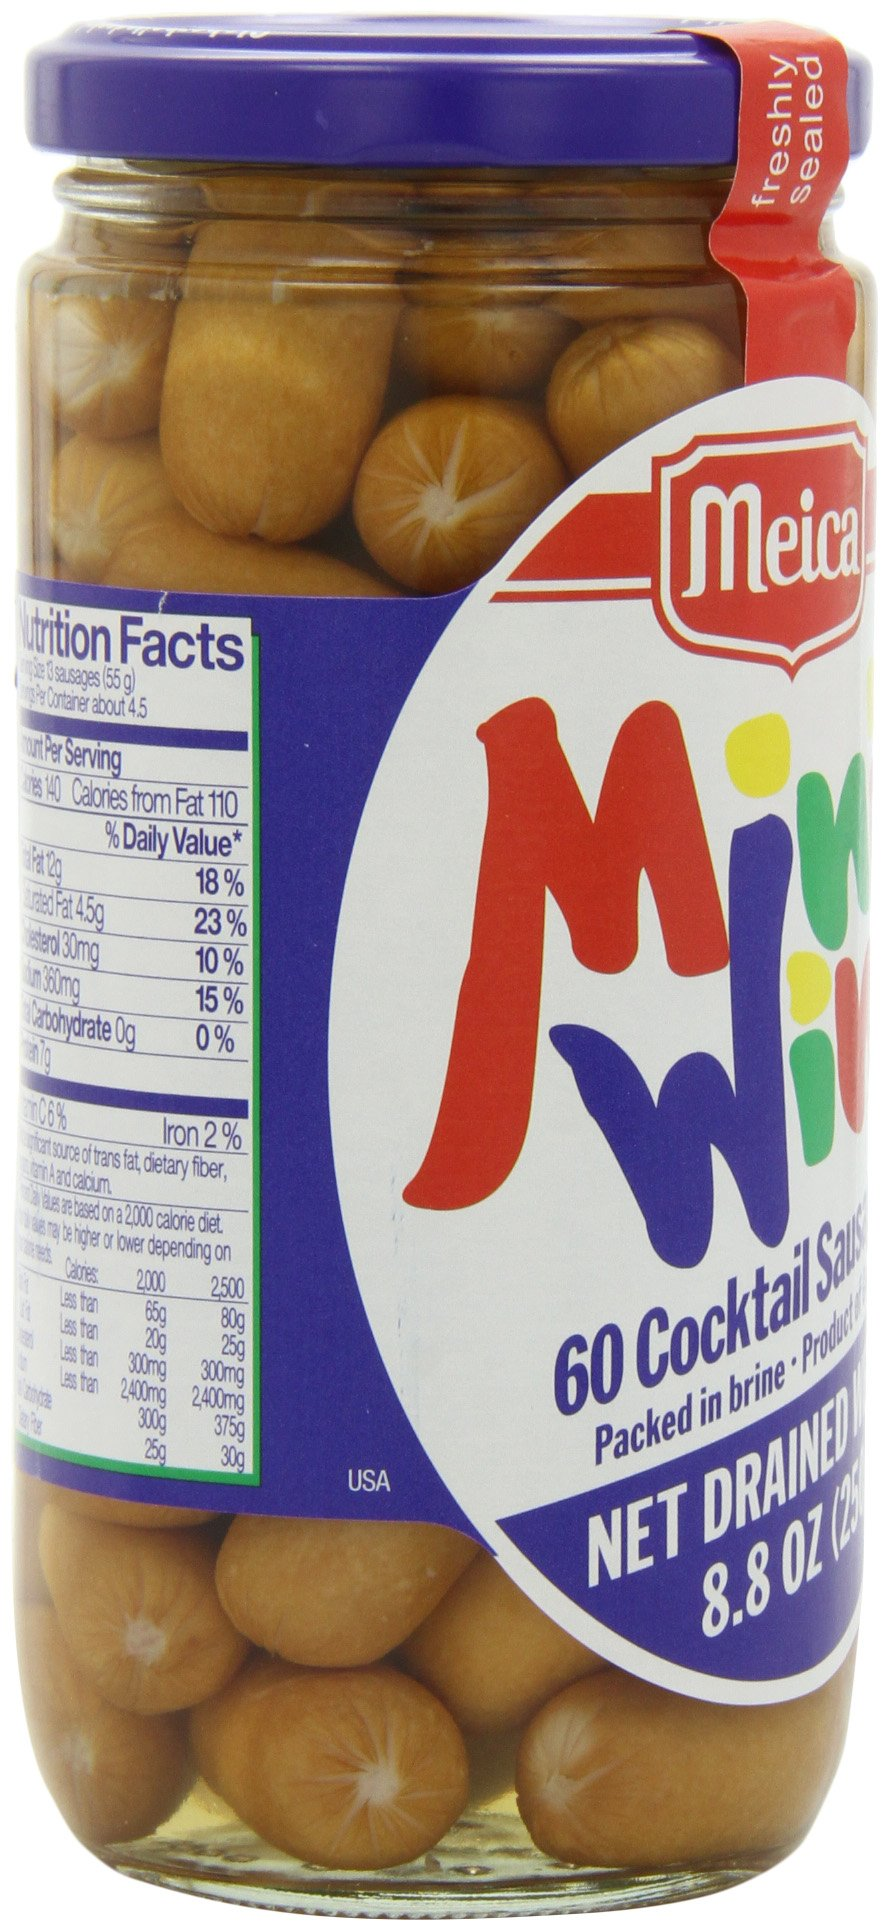 Meica Mini Wini Sixty Cocktail Sausages, 8.8 Ounce by Meica (Image #8)